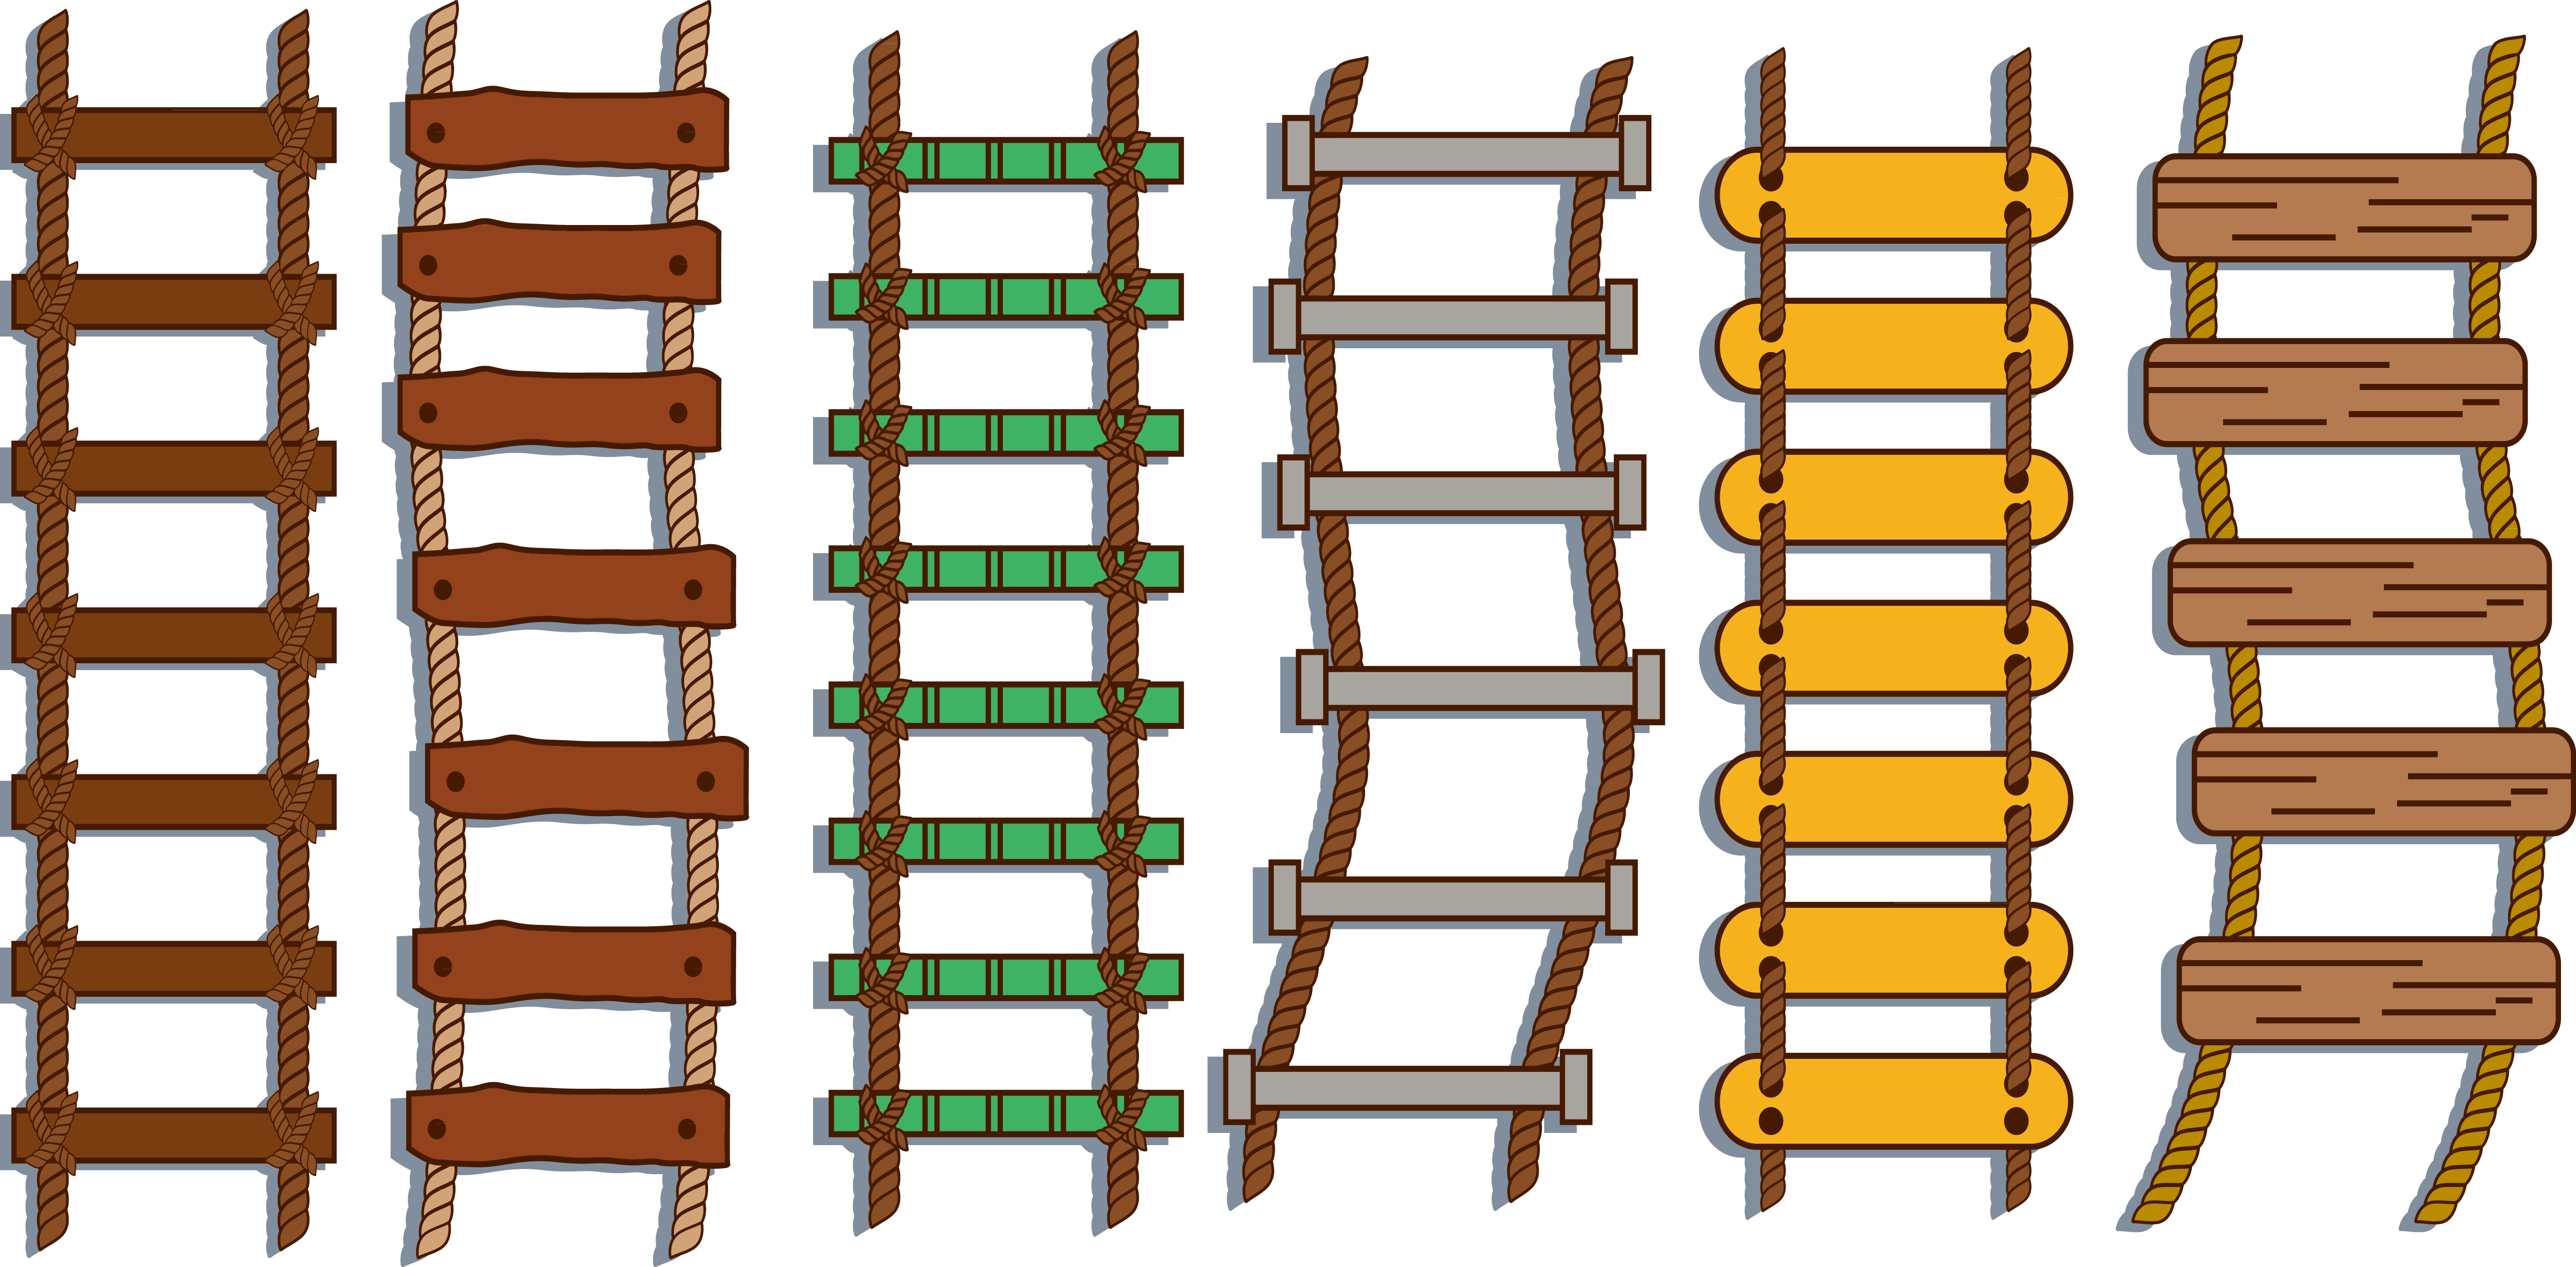 Stairs repstege. Ladder clipart rope ladder